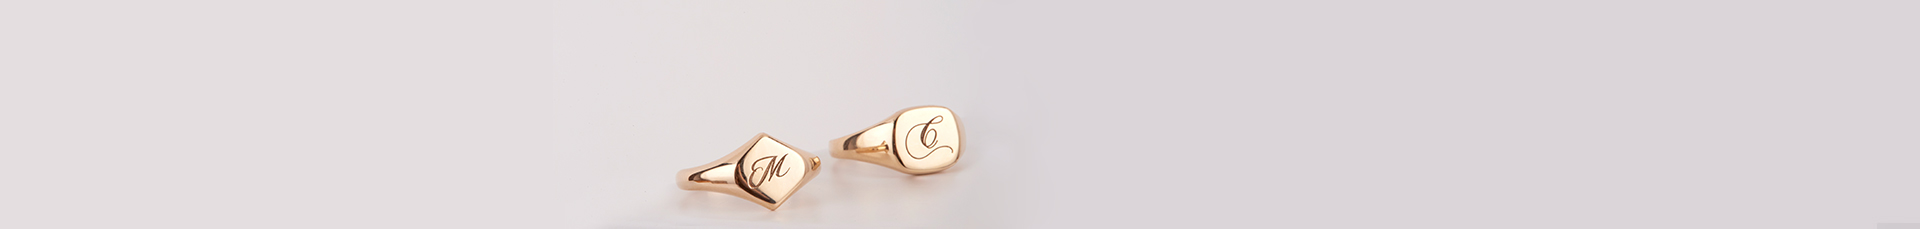 Signet and Pinky Rings